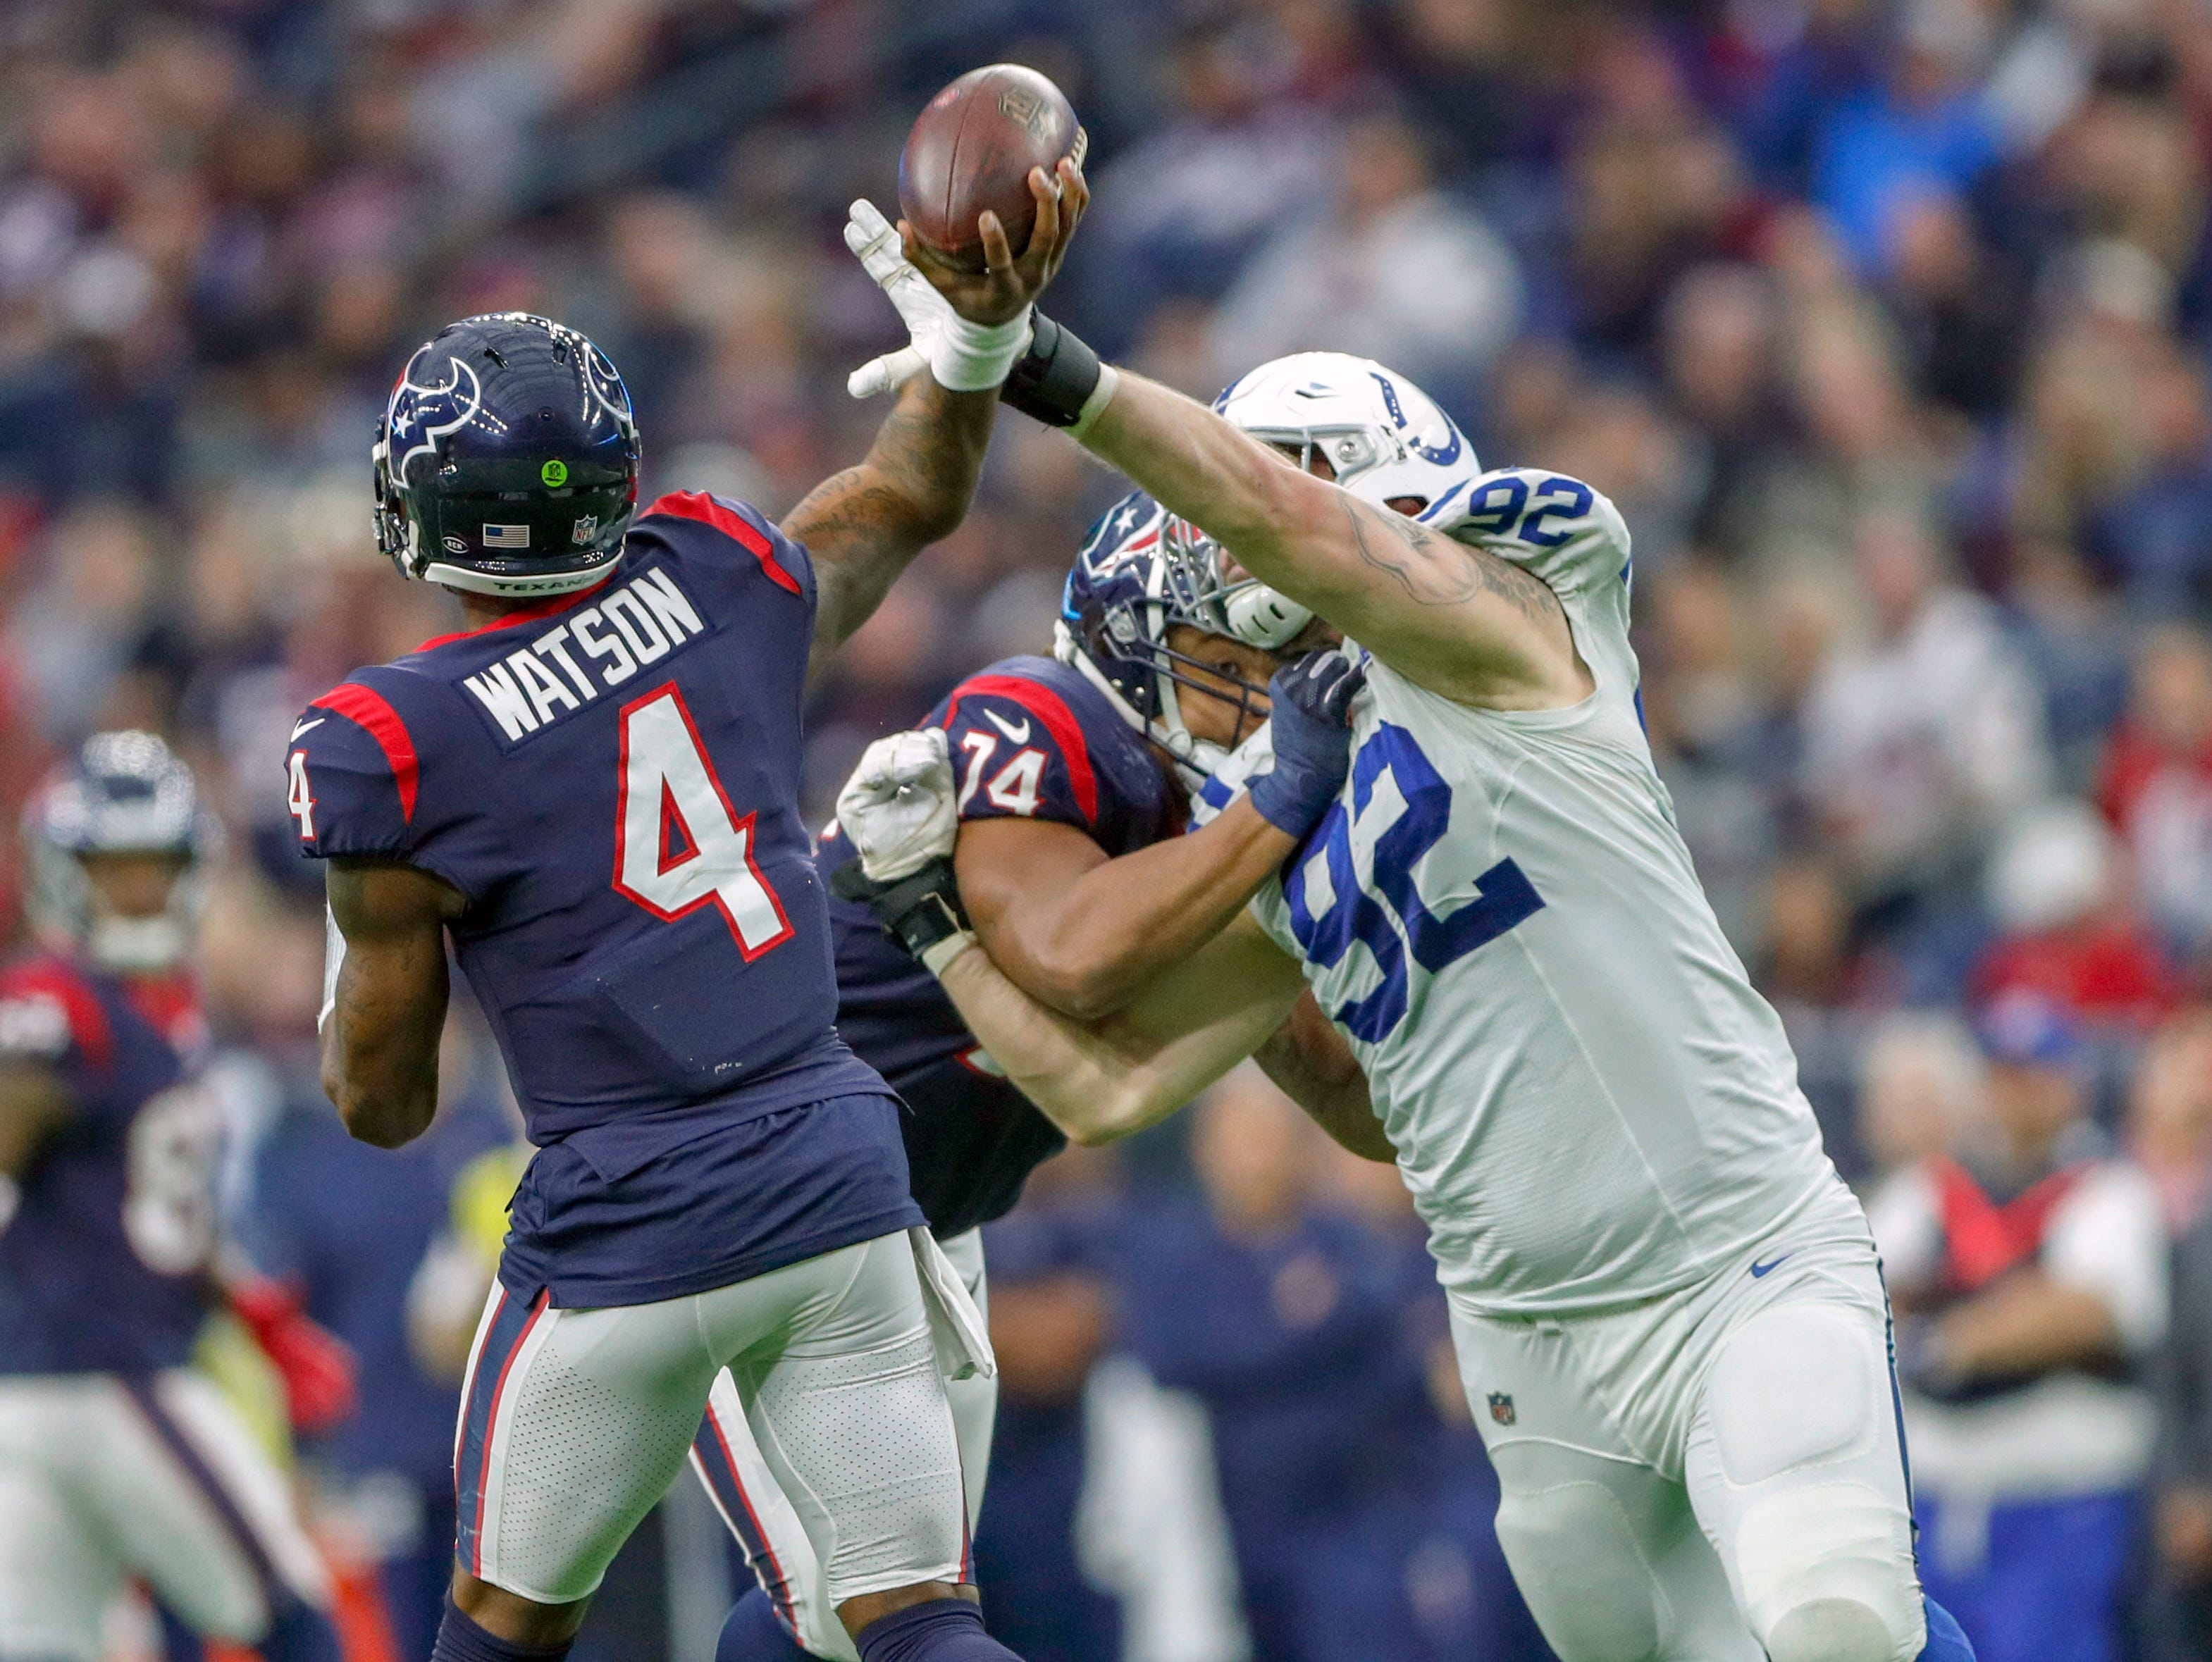 Indianapolis Colts defensive end Margus Hunt (92) breaks up a pass attempt by Houston Texans quarterback Deshaun Watson (4) in the fourth quarter at NRG Stadium in Houston on Sunday, Dec. 9, 2018.